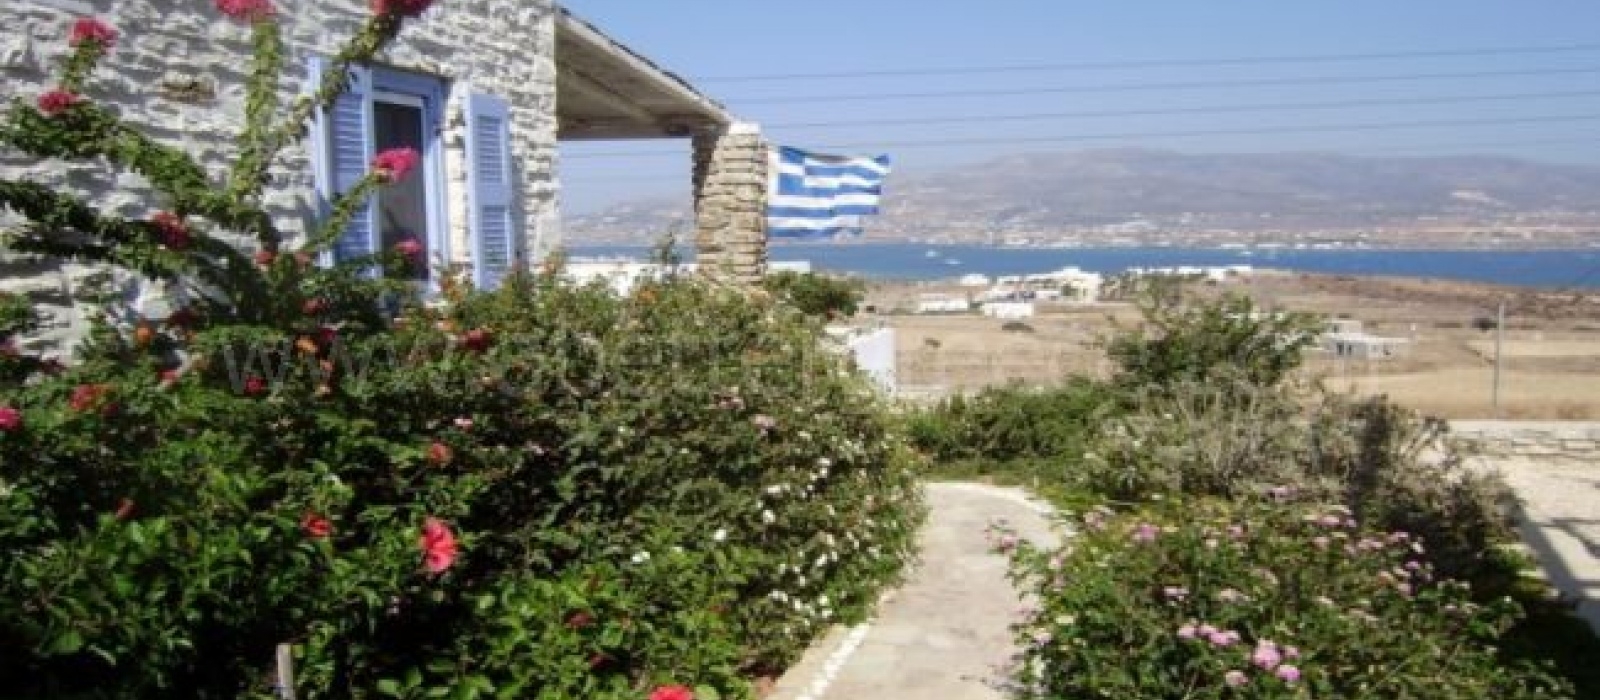 2 Bedrooms, Villa, Vacation Rental, 2 Bathrooms, Listing ID 1112, Antiparos, Greece,